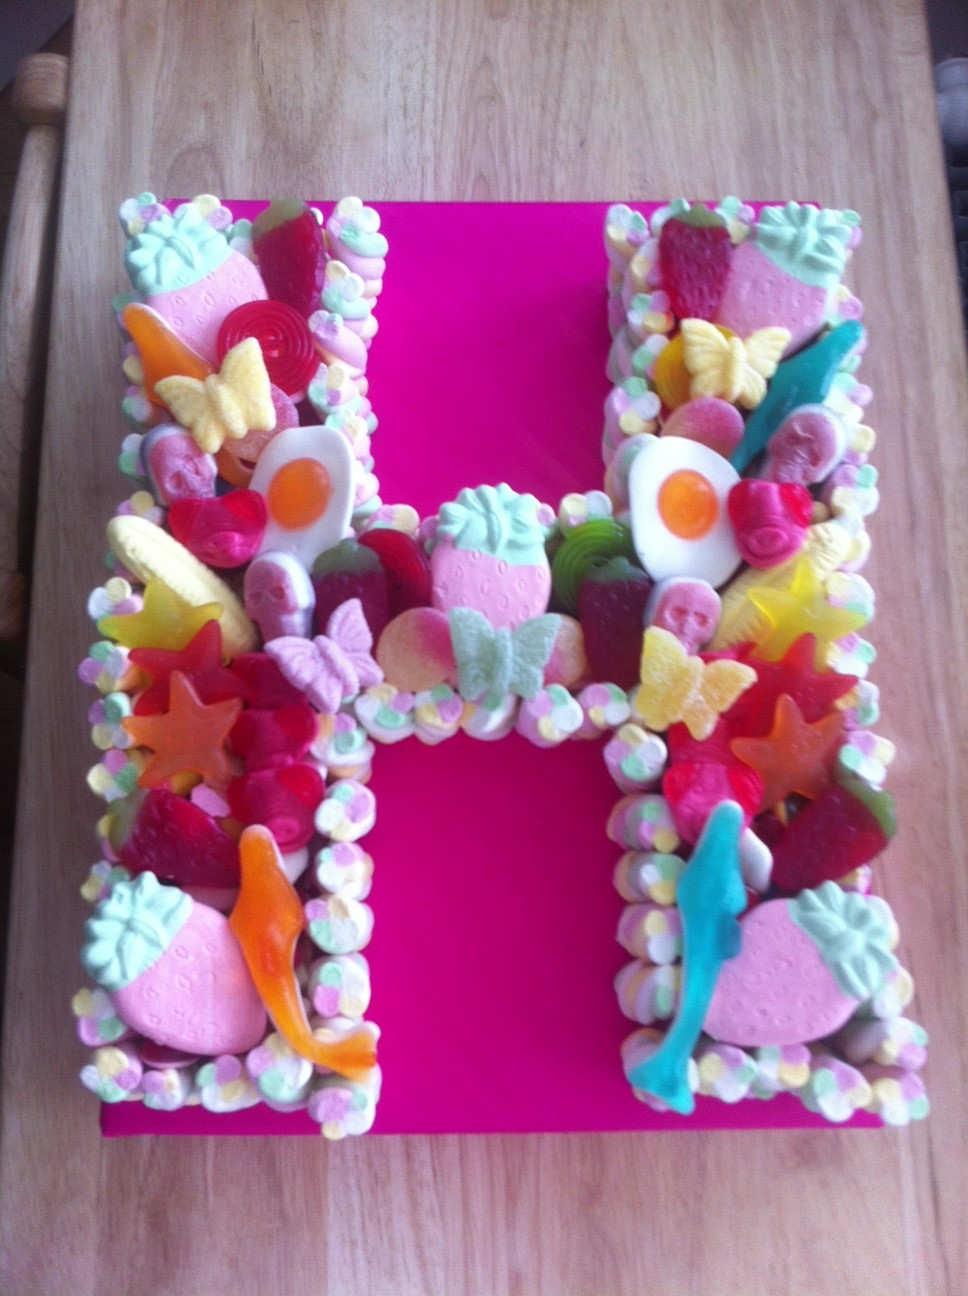 Cake Design Letters : Gallery 6 Cakes Made Of Sweets - Call FREE 0800 756 5545